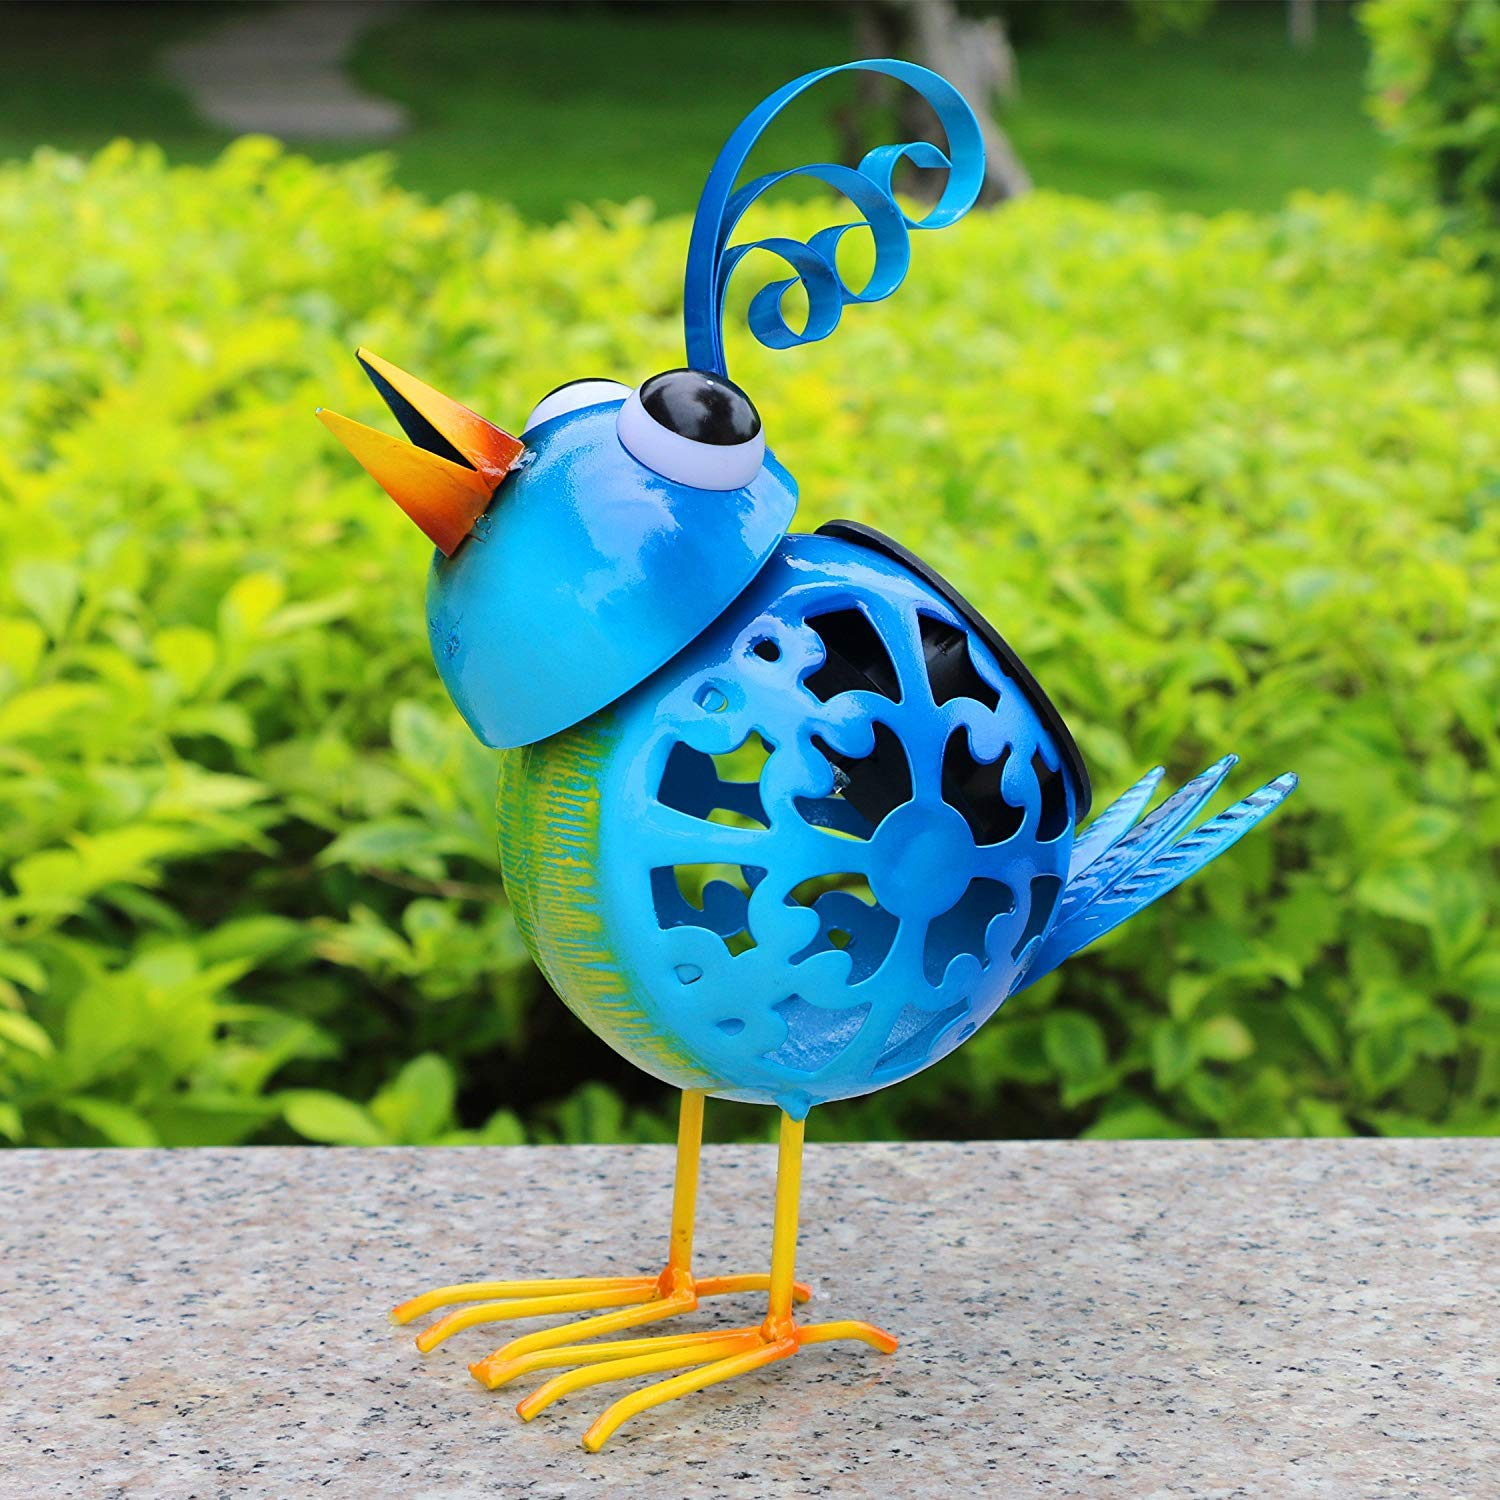 Solar Animal Lights Blue Metal Bird Statues Garden Decor for Pathway Patio Courtyard Seven Colors Changing LED Lights